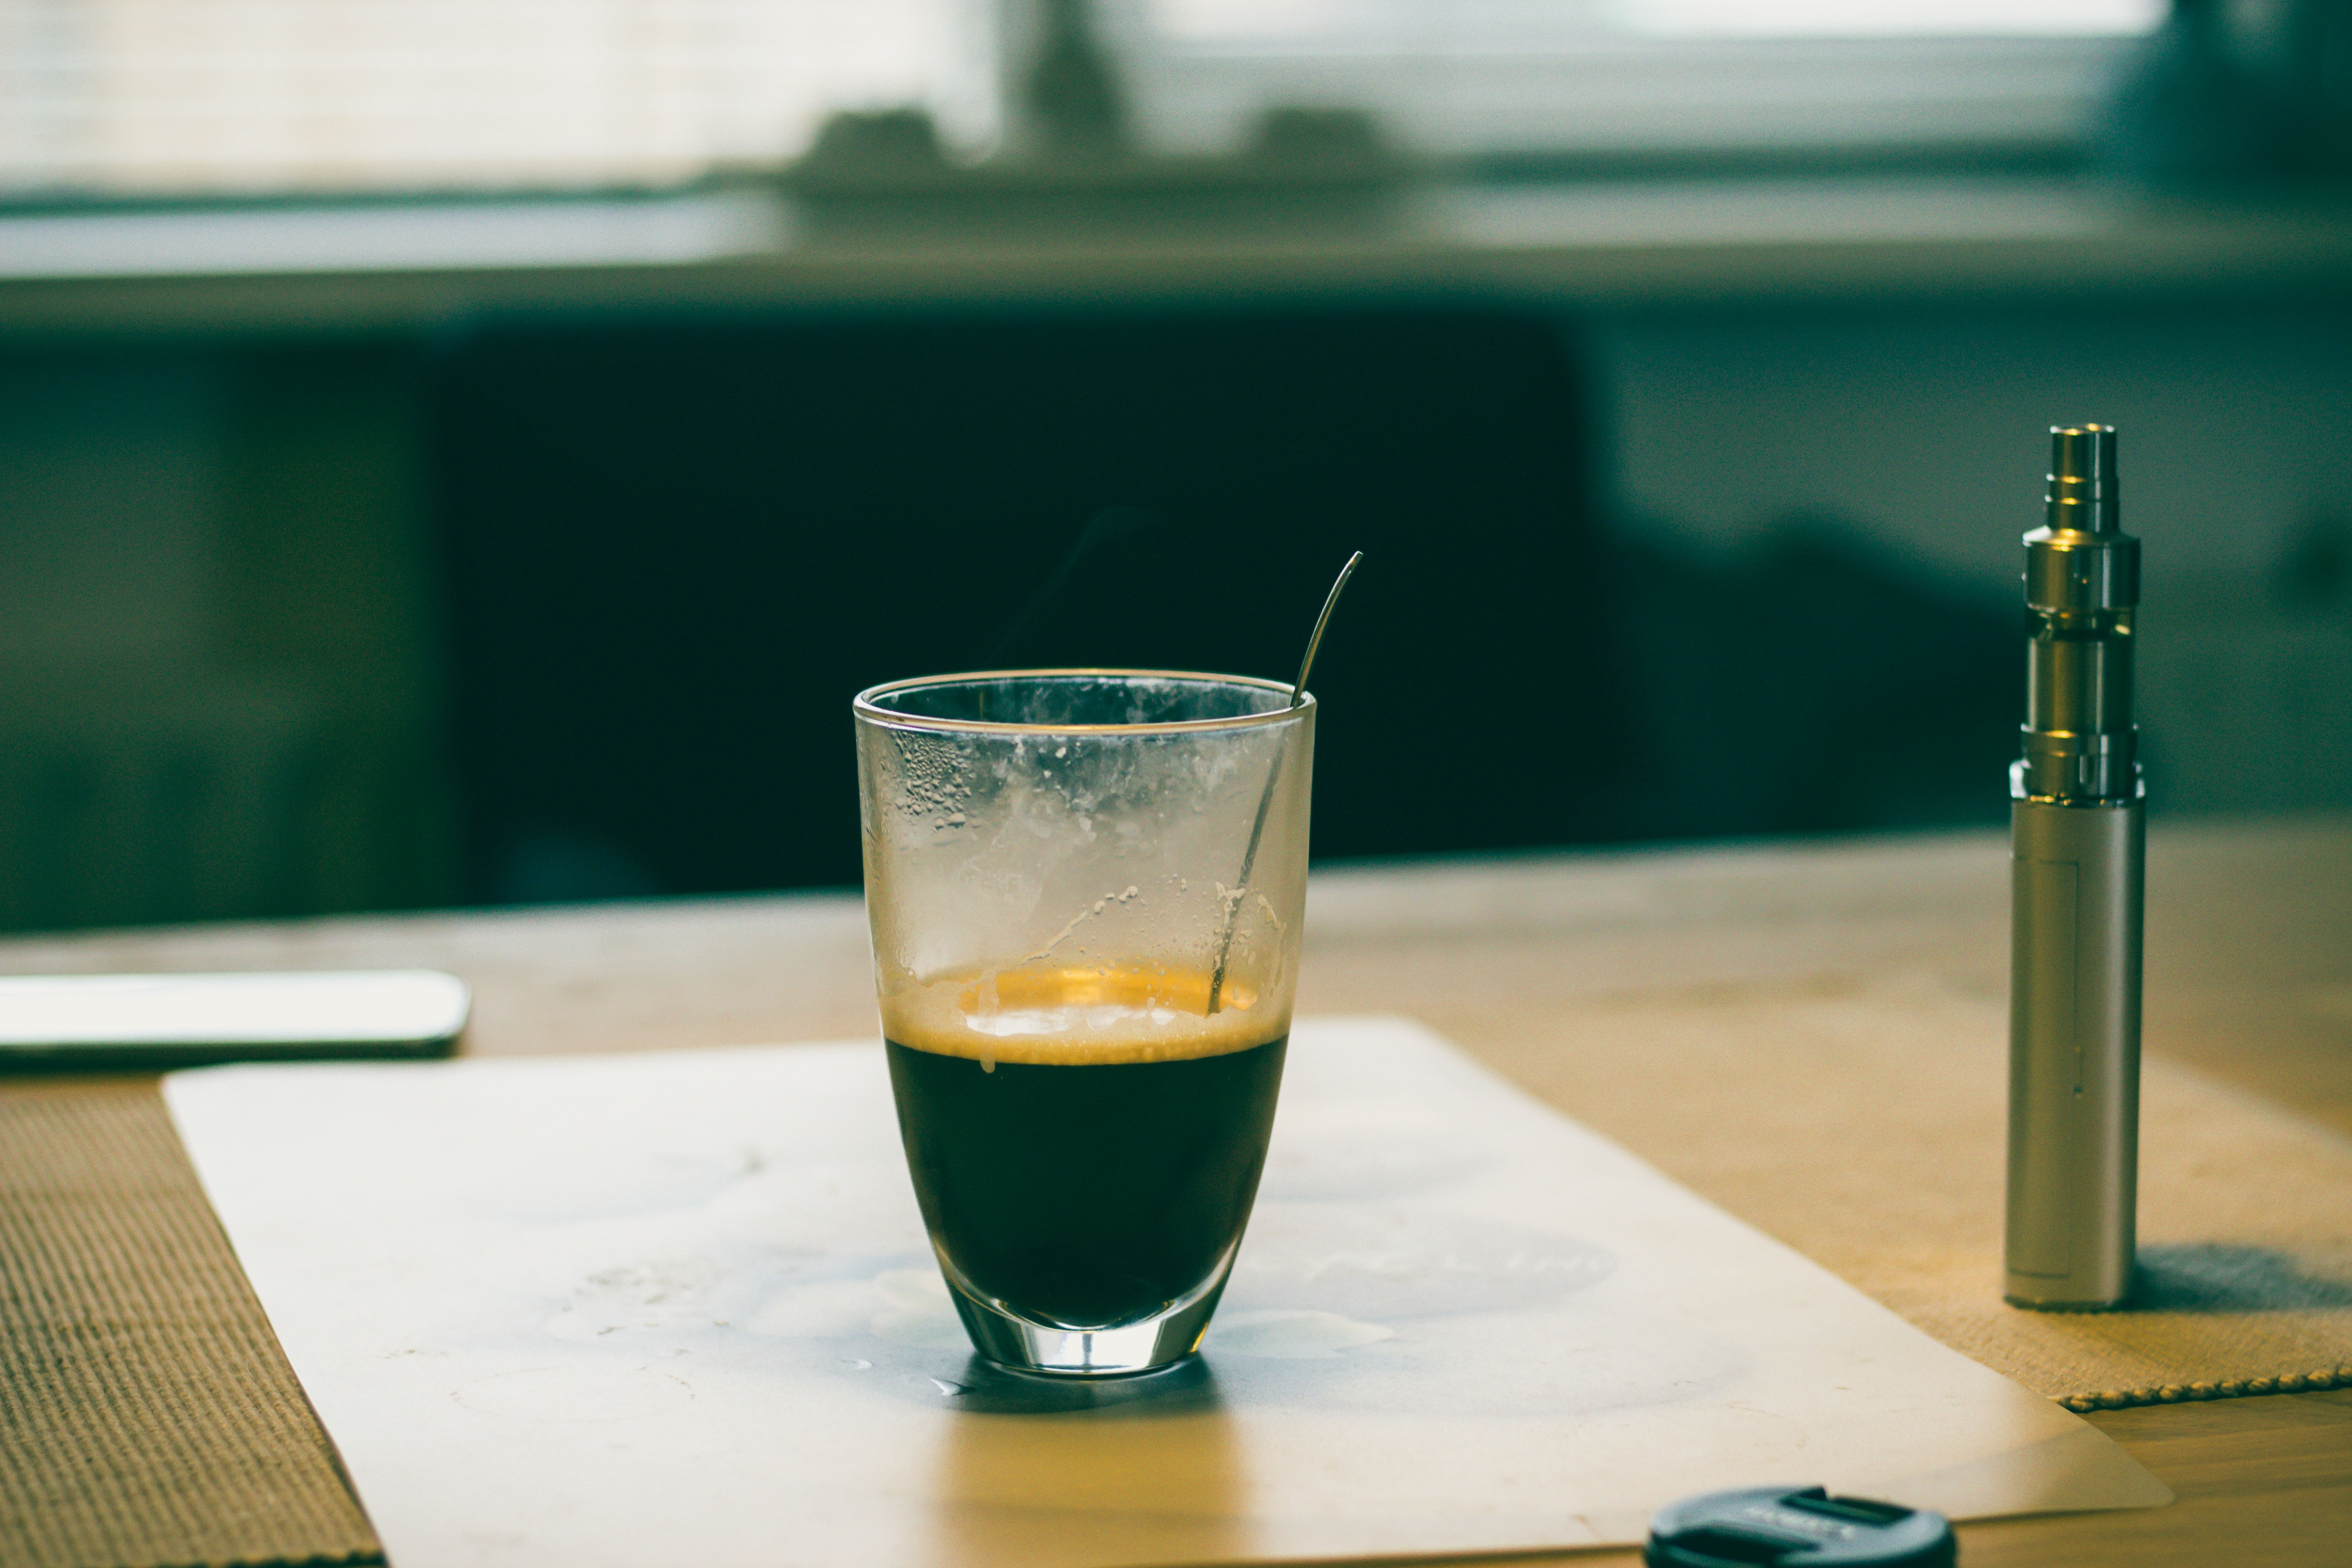 A glass cup of coffee placed on a paper on a table